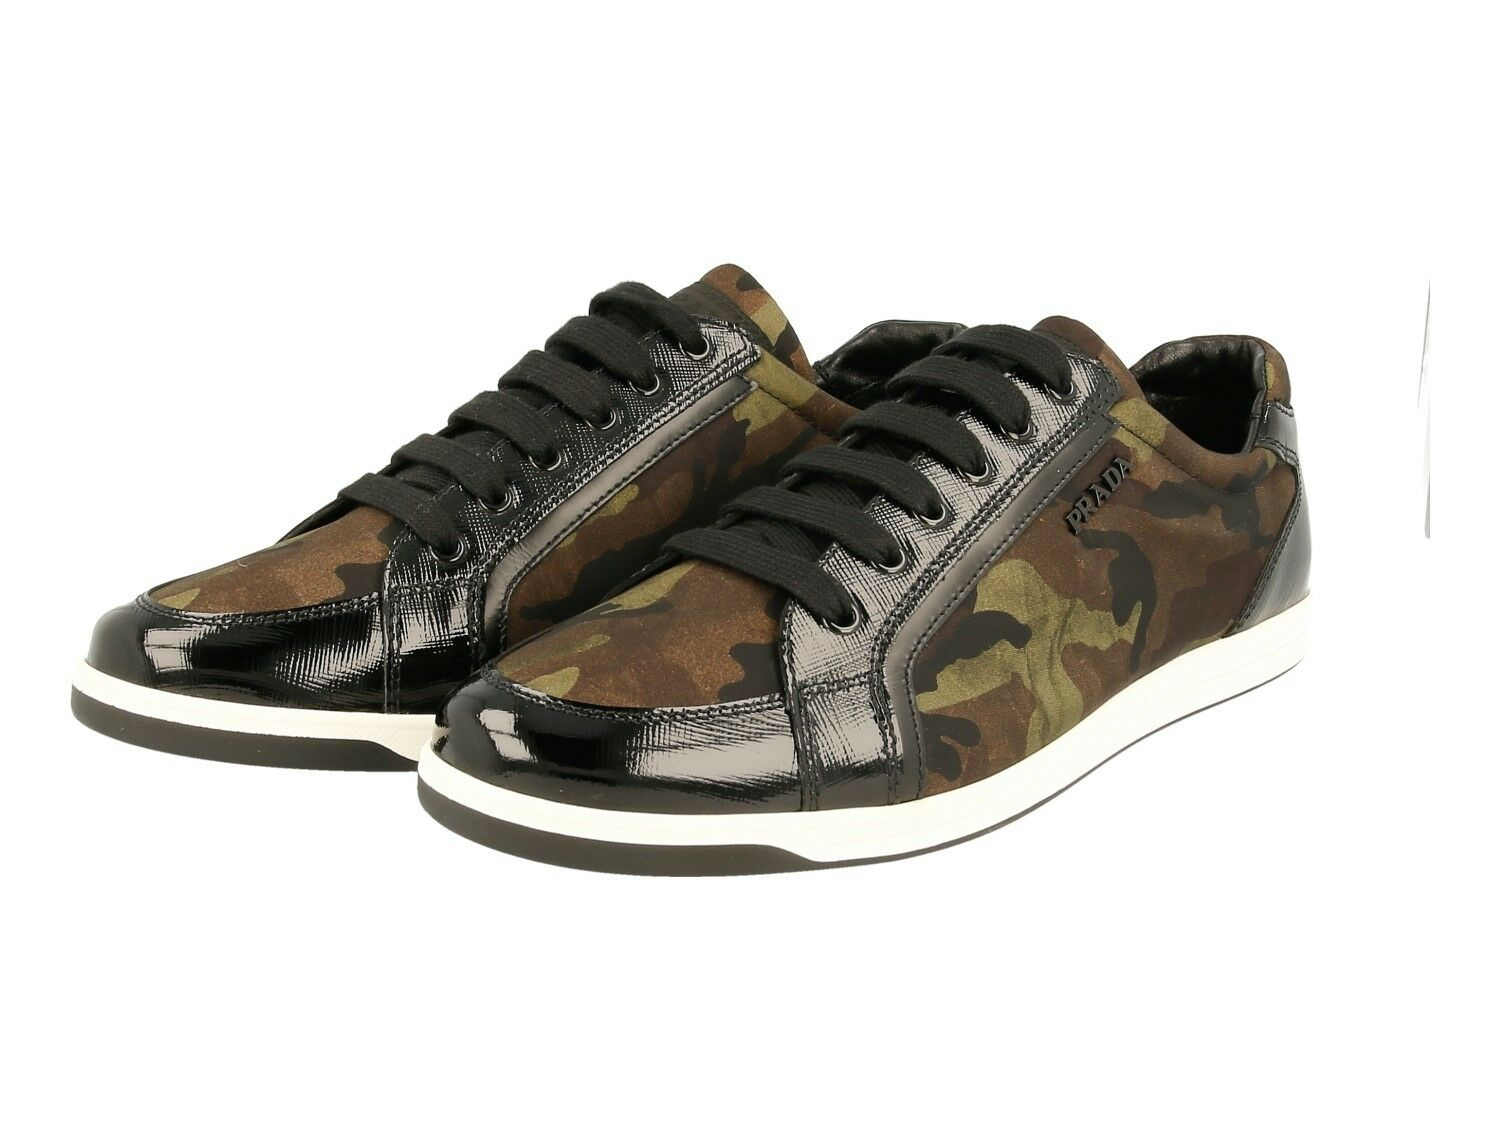 AUTH PRADA SAFFIANO SNEAKERS SHOES 3E5892 CAMOUFLAGE NEW 40 40,5 UK 7